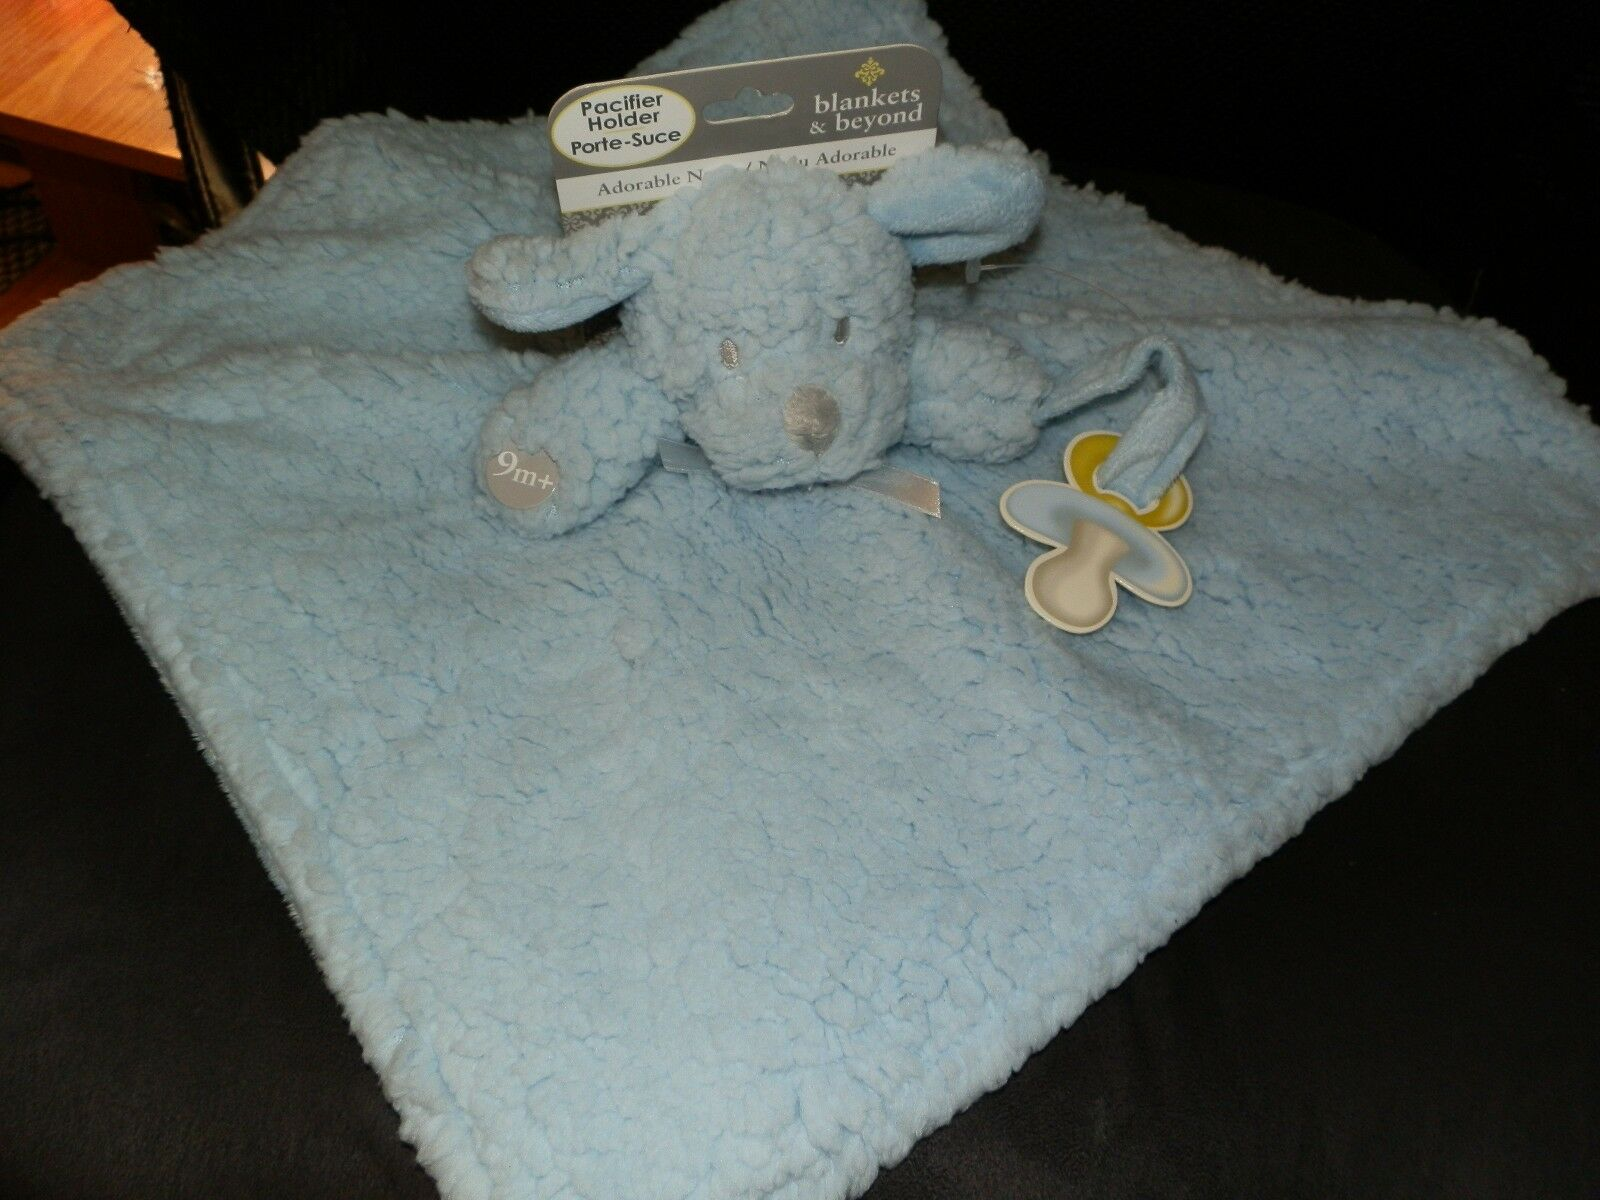 SECURITY BLANKET BEYOND PUPPY DOG BLUE SHERPA STROLLER TIES PACI HOLDER SQUARE